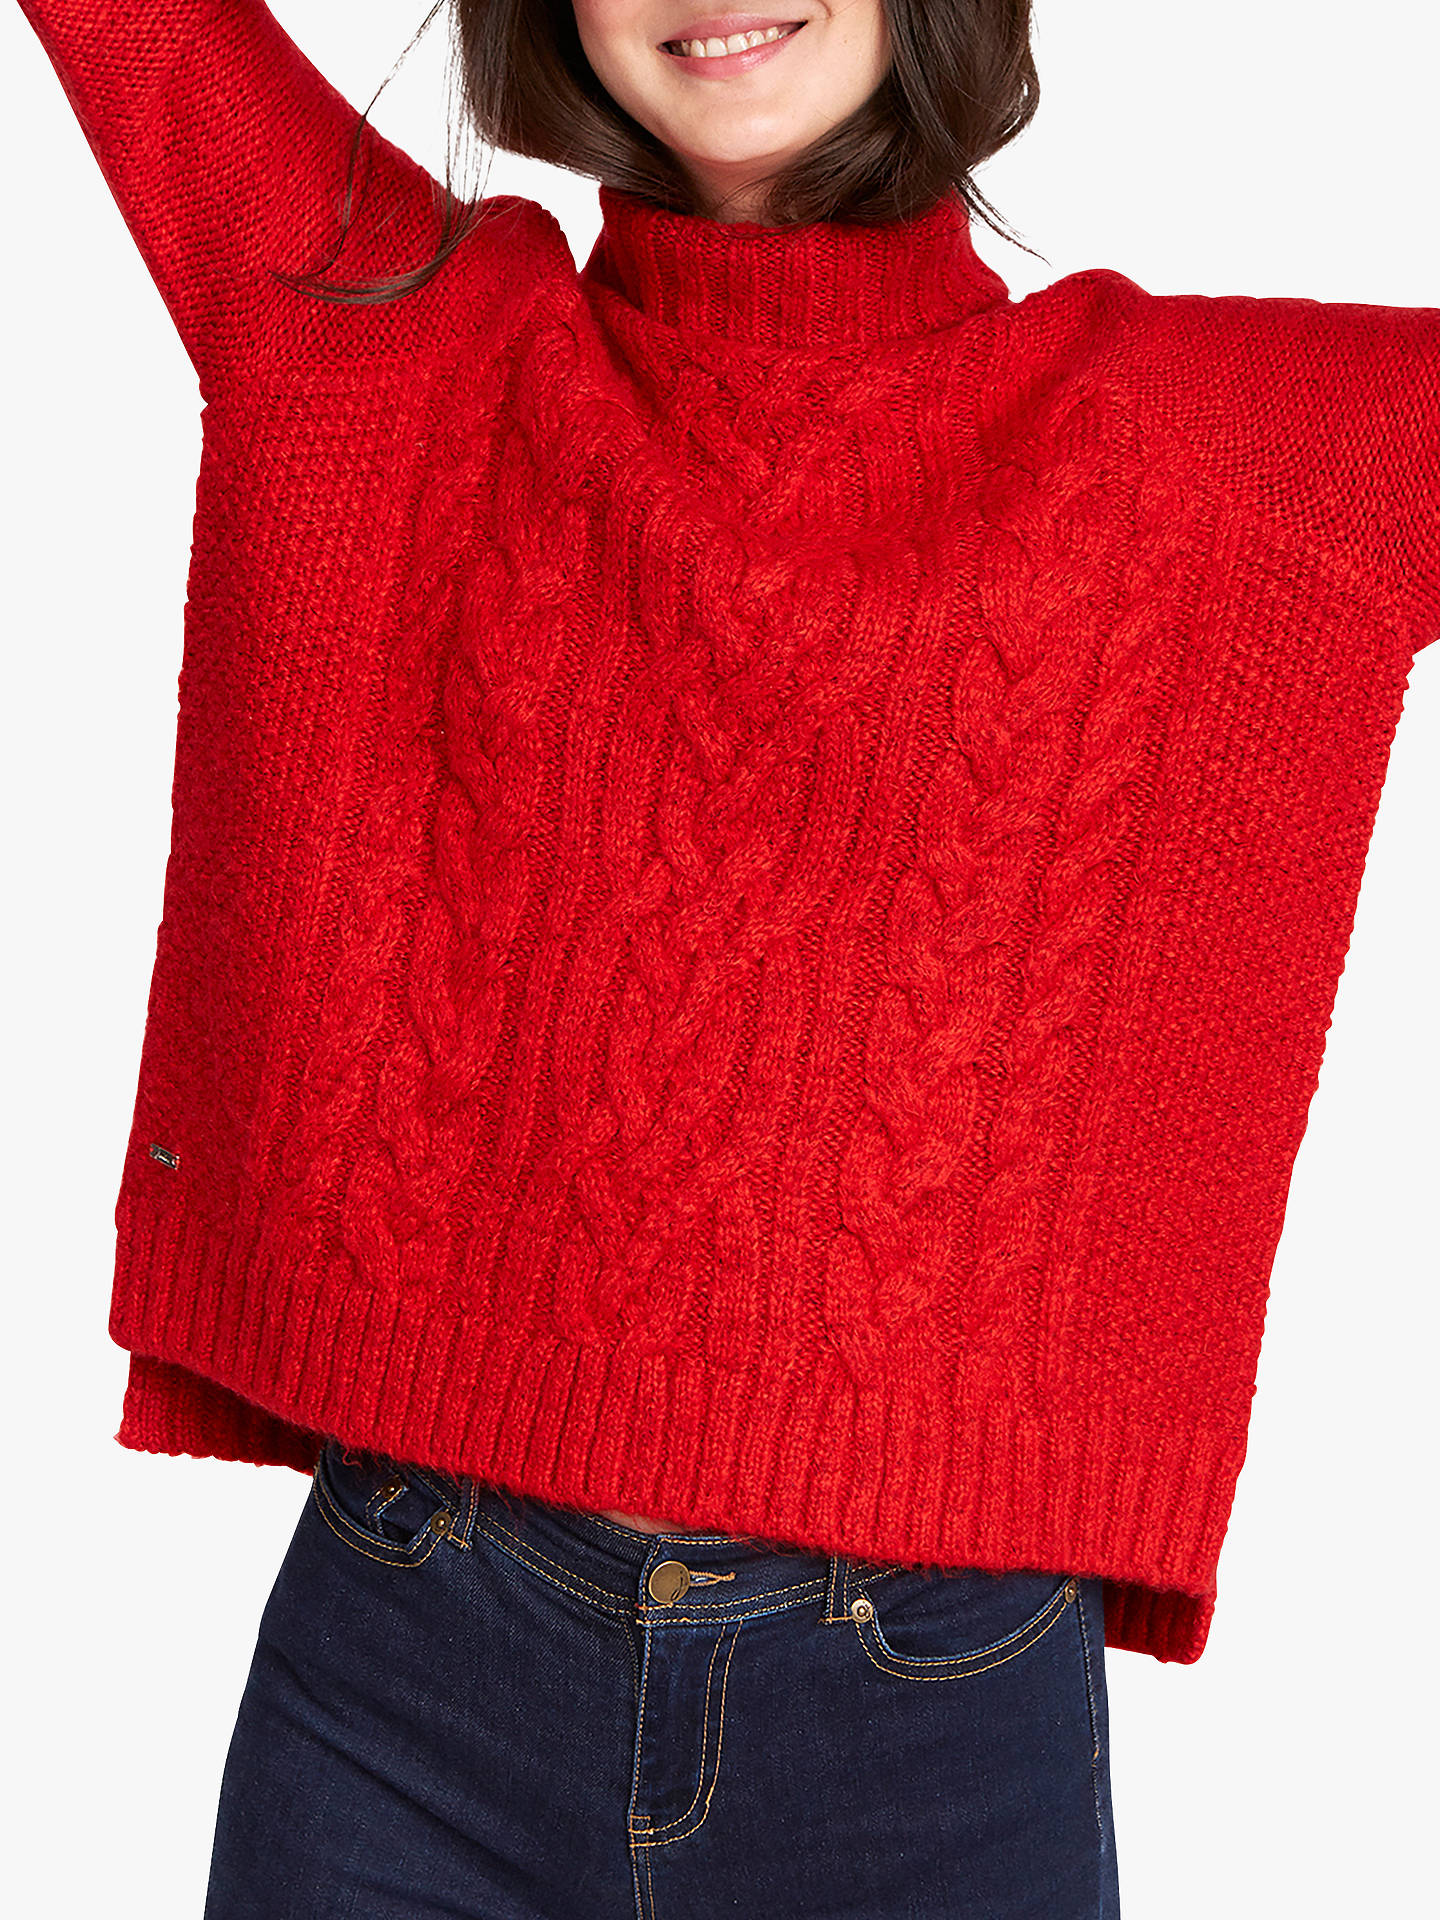 c8dd7fbb66f Joules Jessie Cable Knit Roll Neck Jumper at John Lewis & Partners